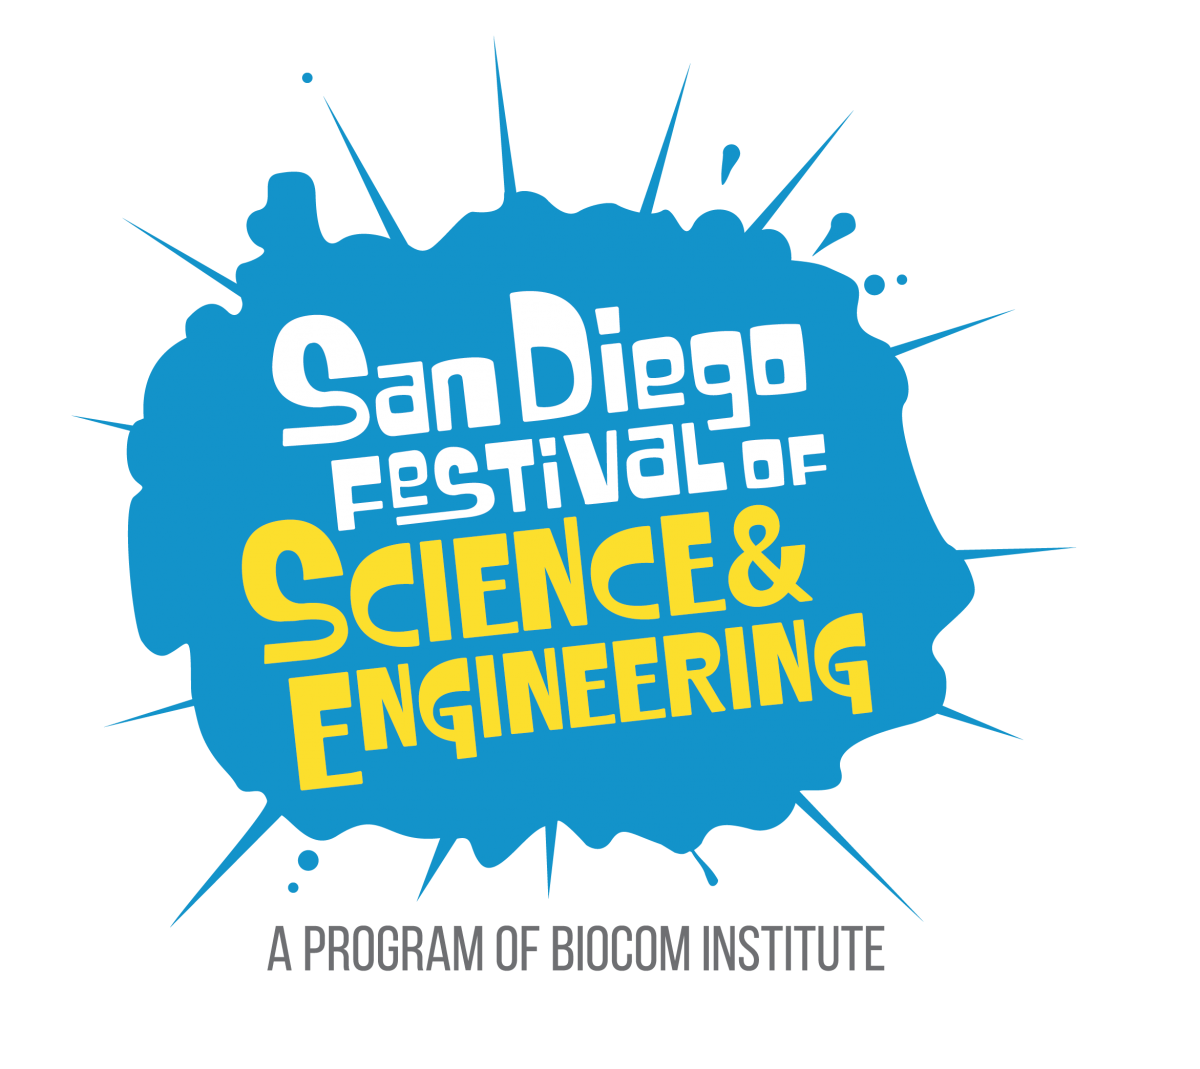 San Diego Festival of Science & Engineering 2019 Logo